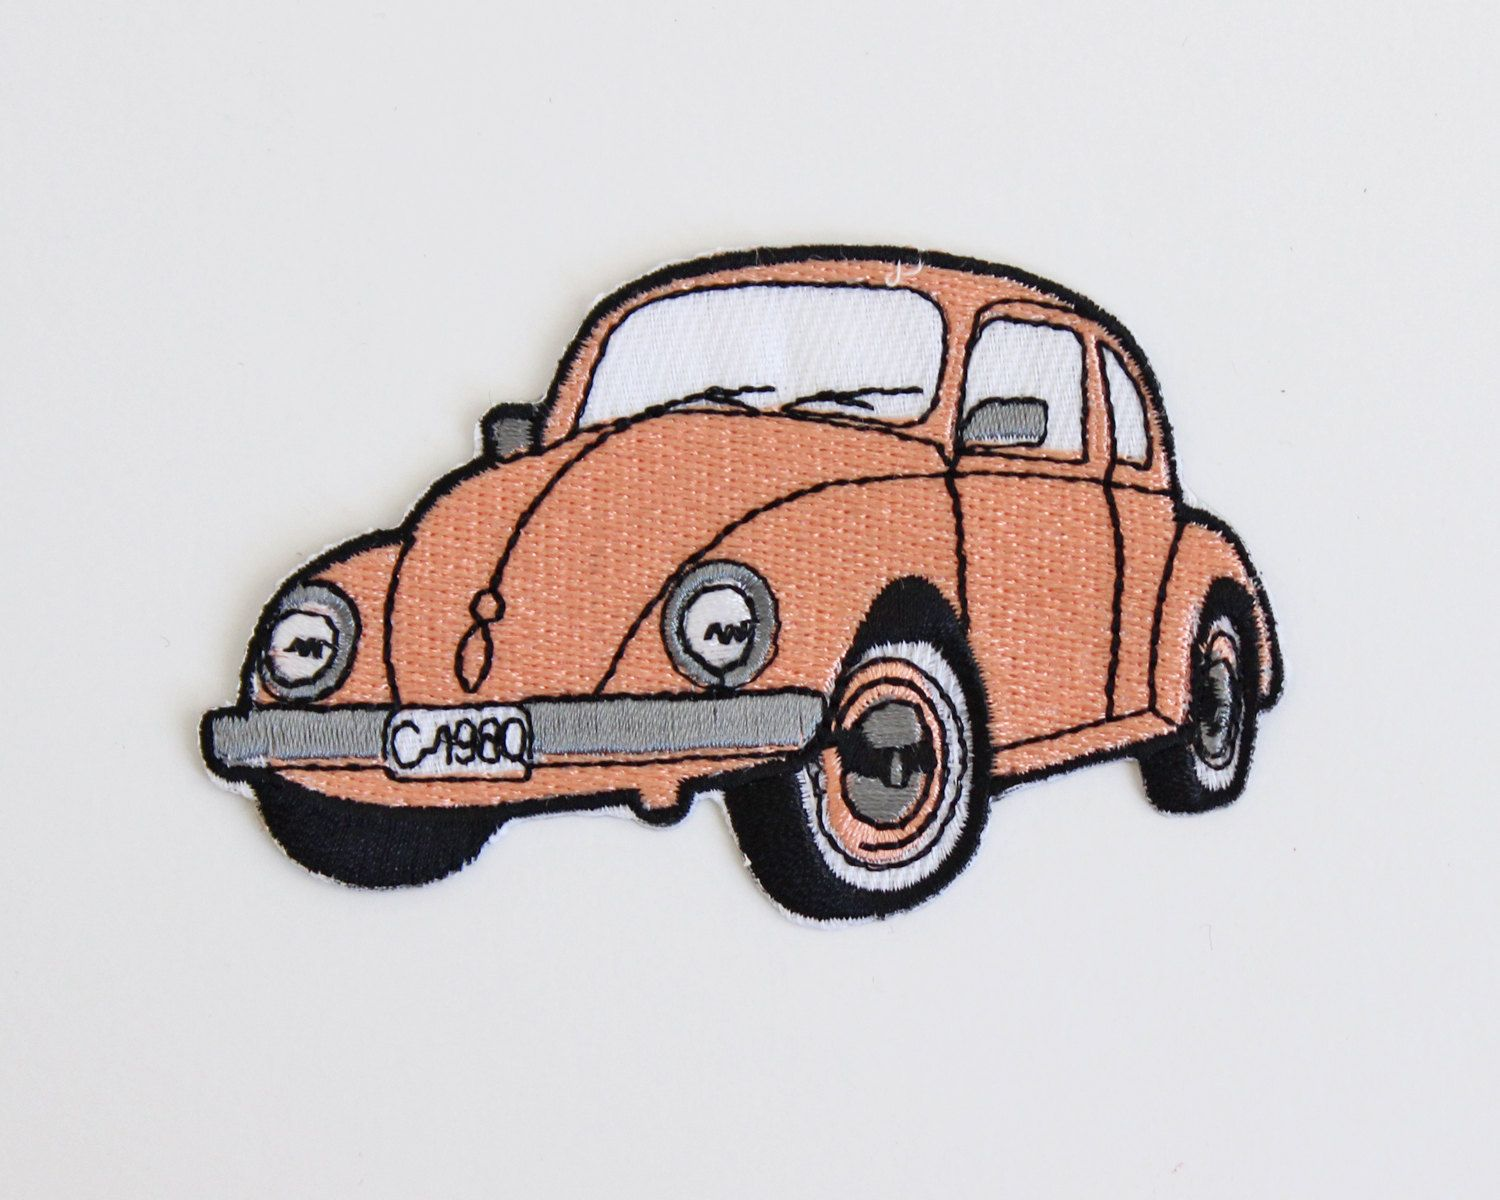 Bumble bee embroidery designs car pictures - Vintage Volkswagen Beetle Patch Coral Iron On Embroidered Car Patch Vintage Applique Patch